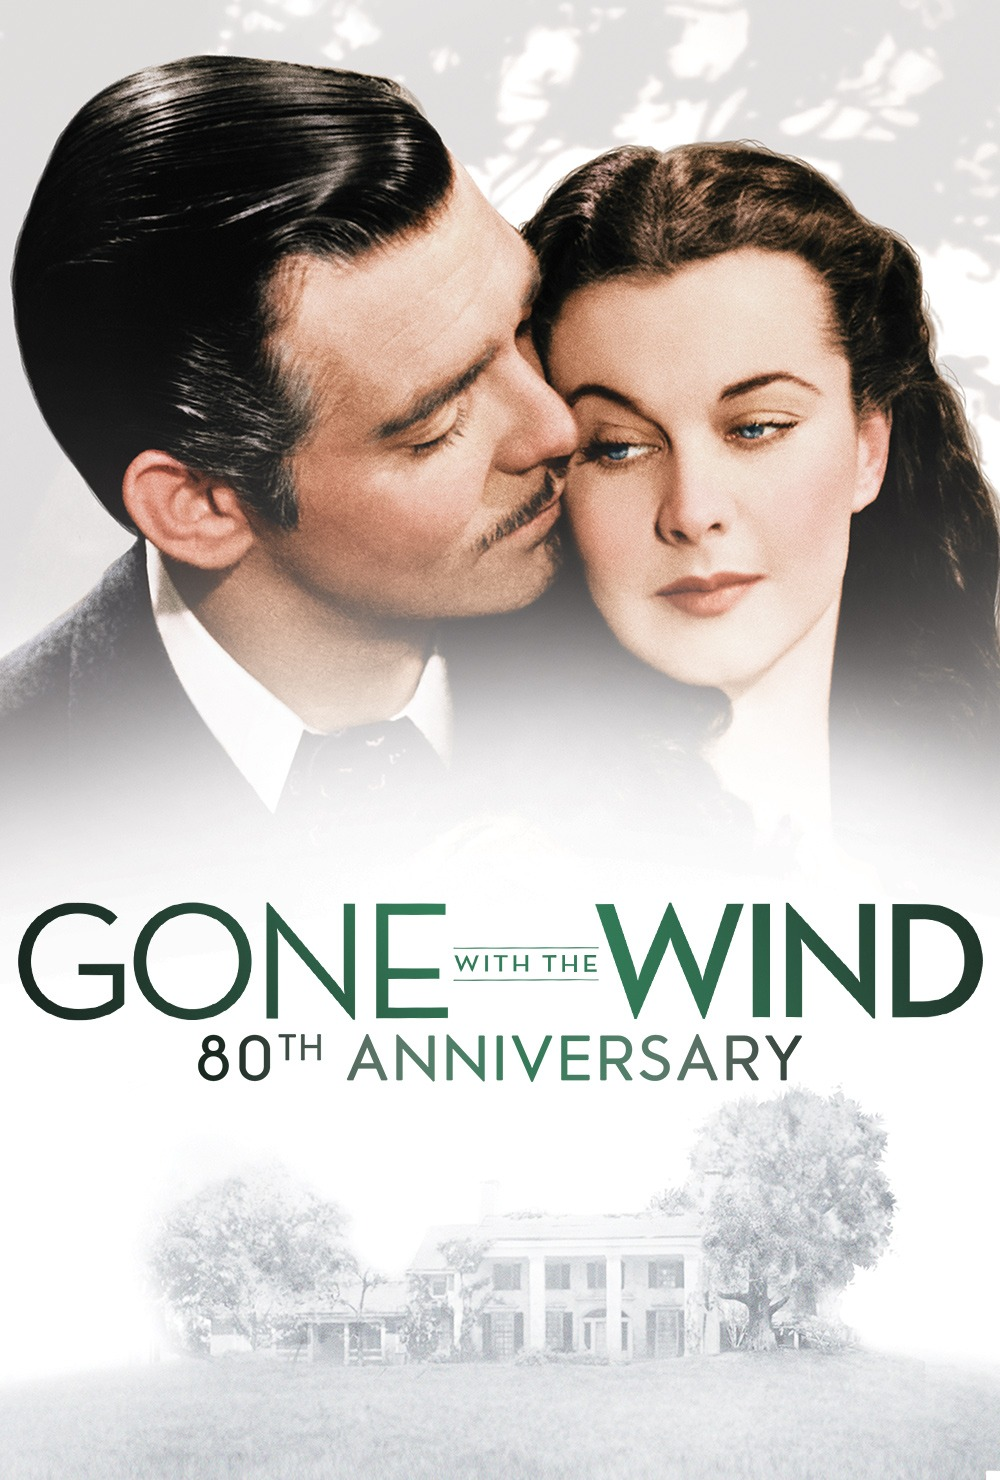 Gone With the Wind back in theaters movie poster